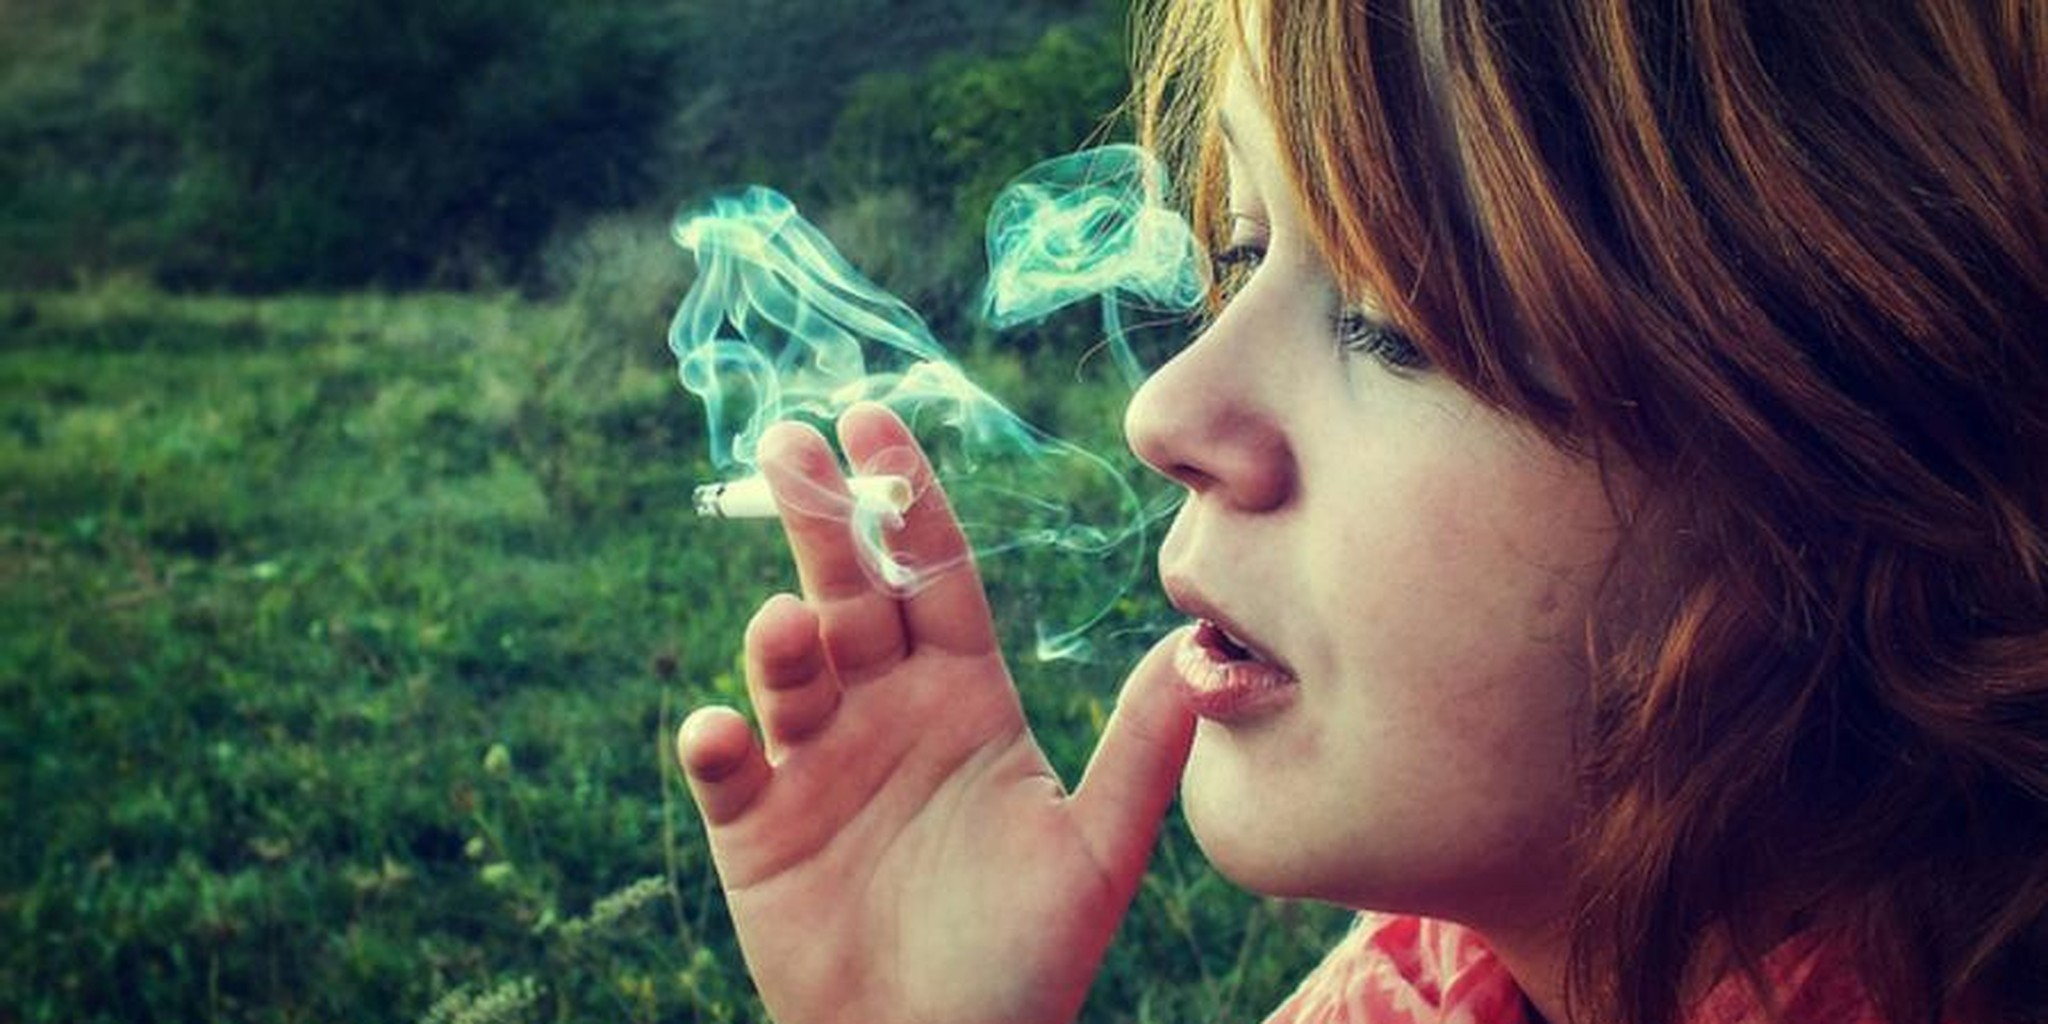 Meet girls who smoke weed